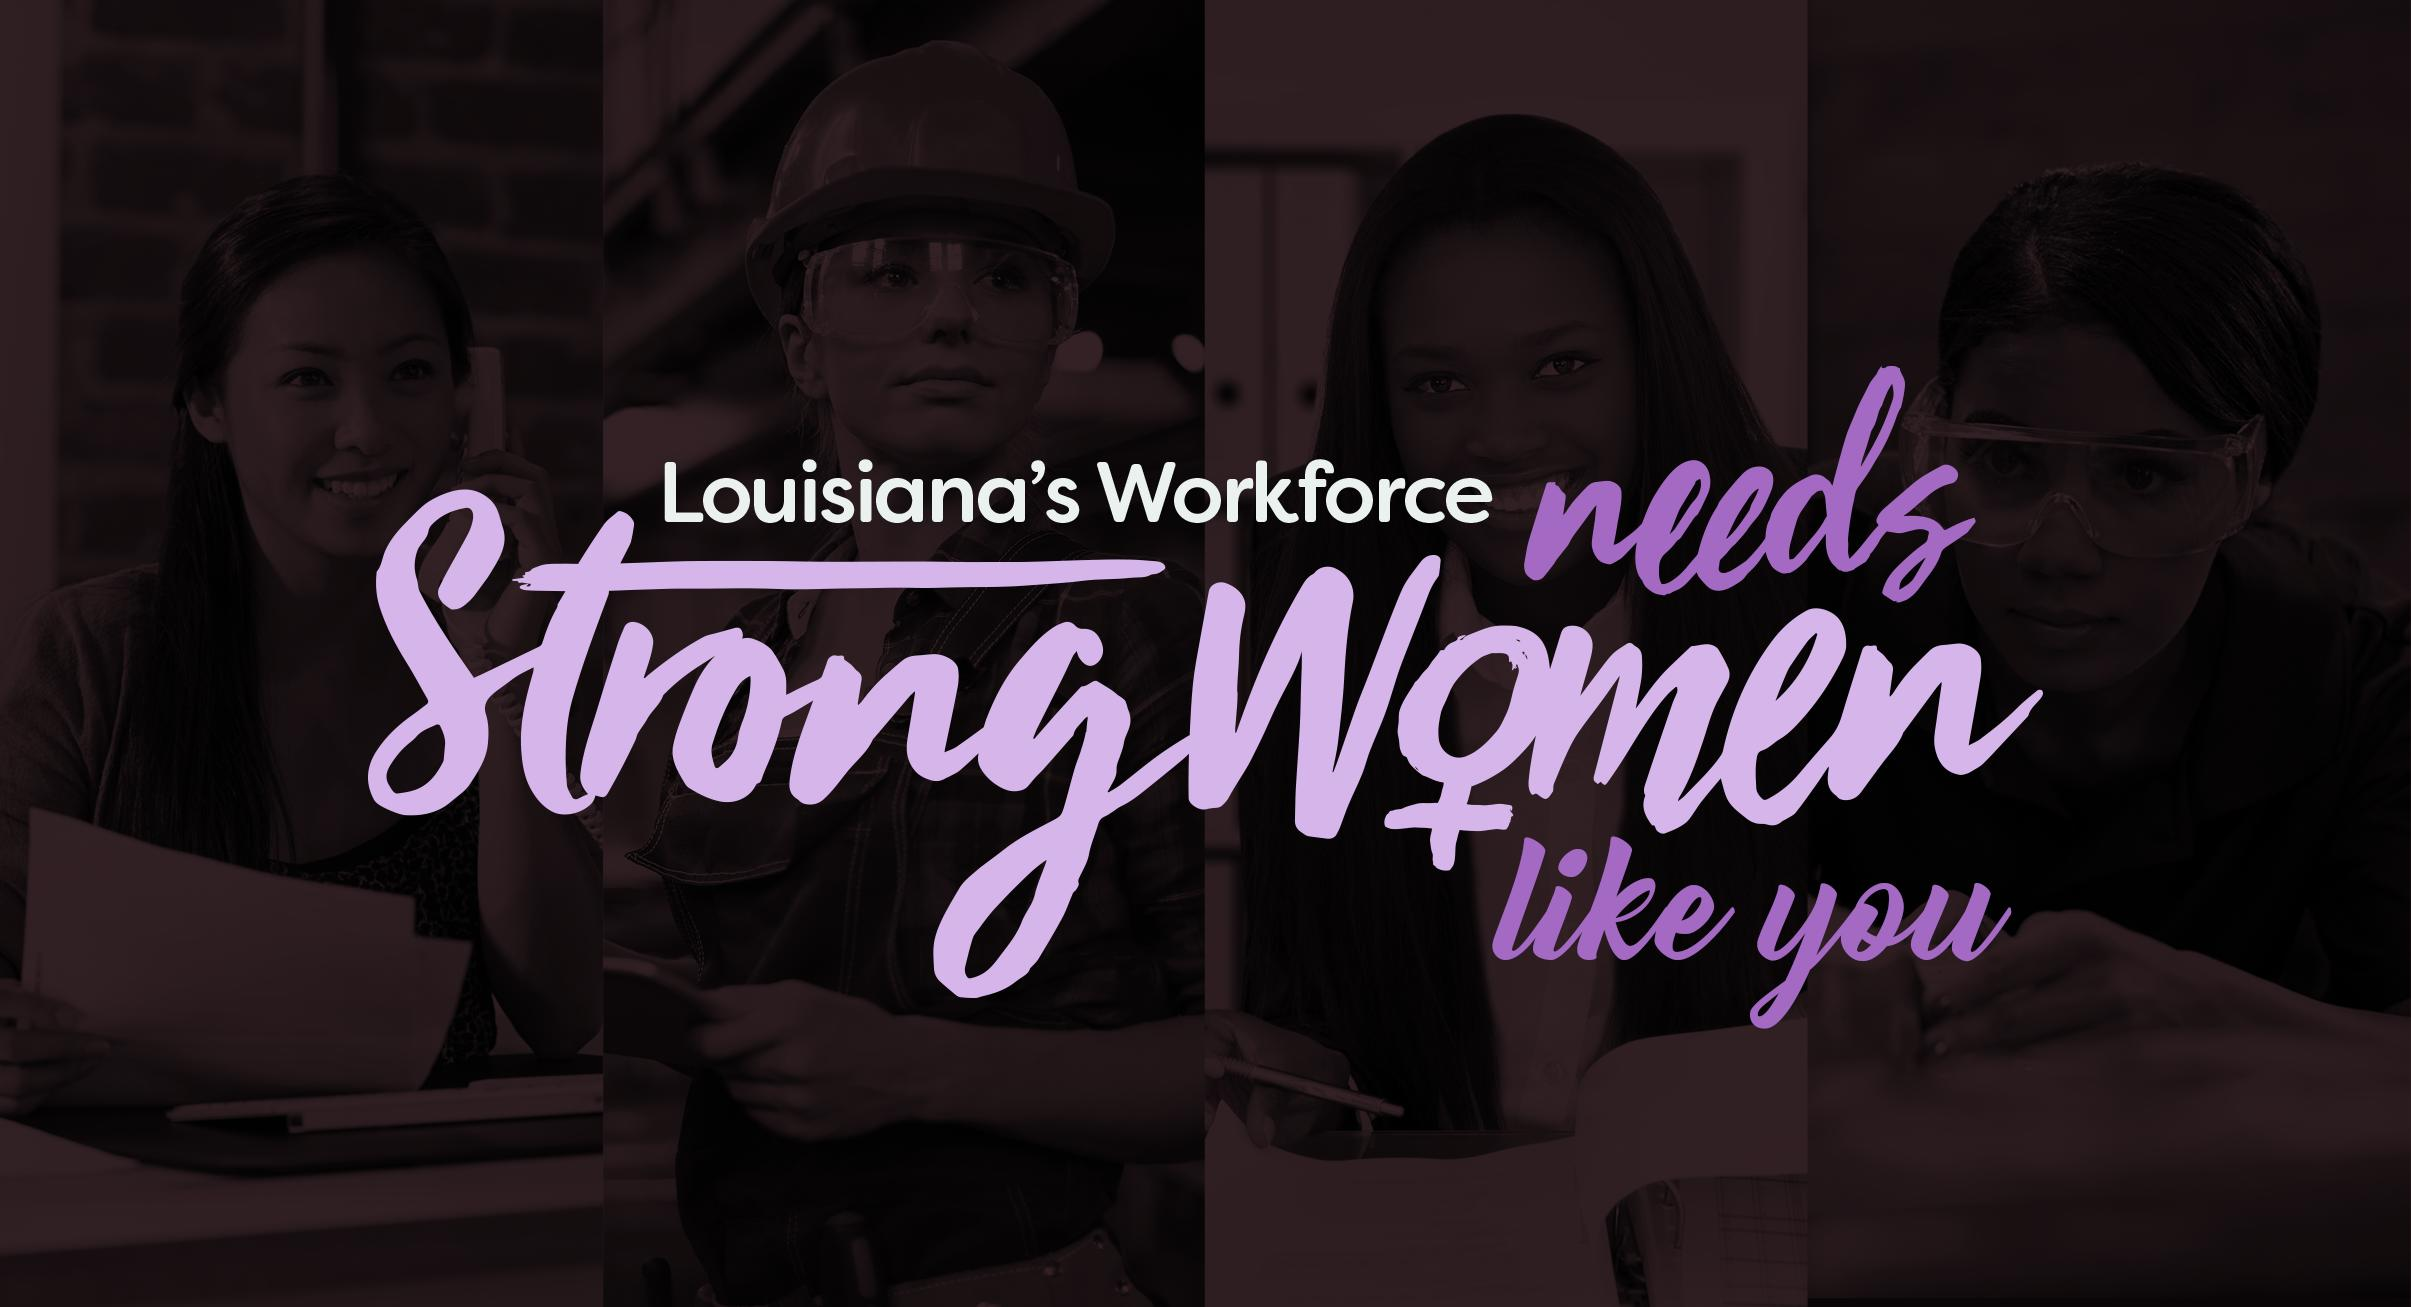 Louisiana's Workforce Needs Strong Women Like You Banner